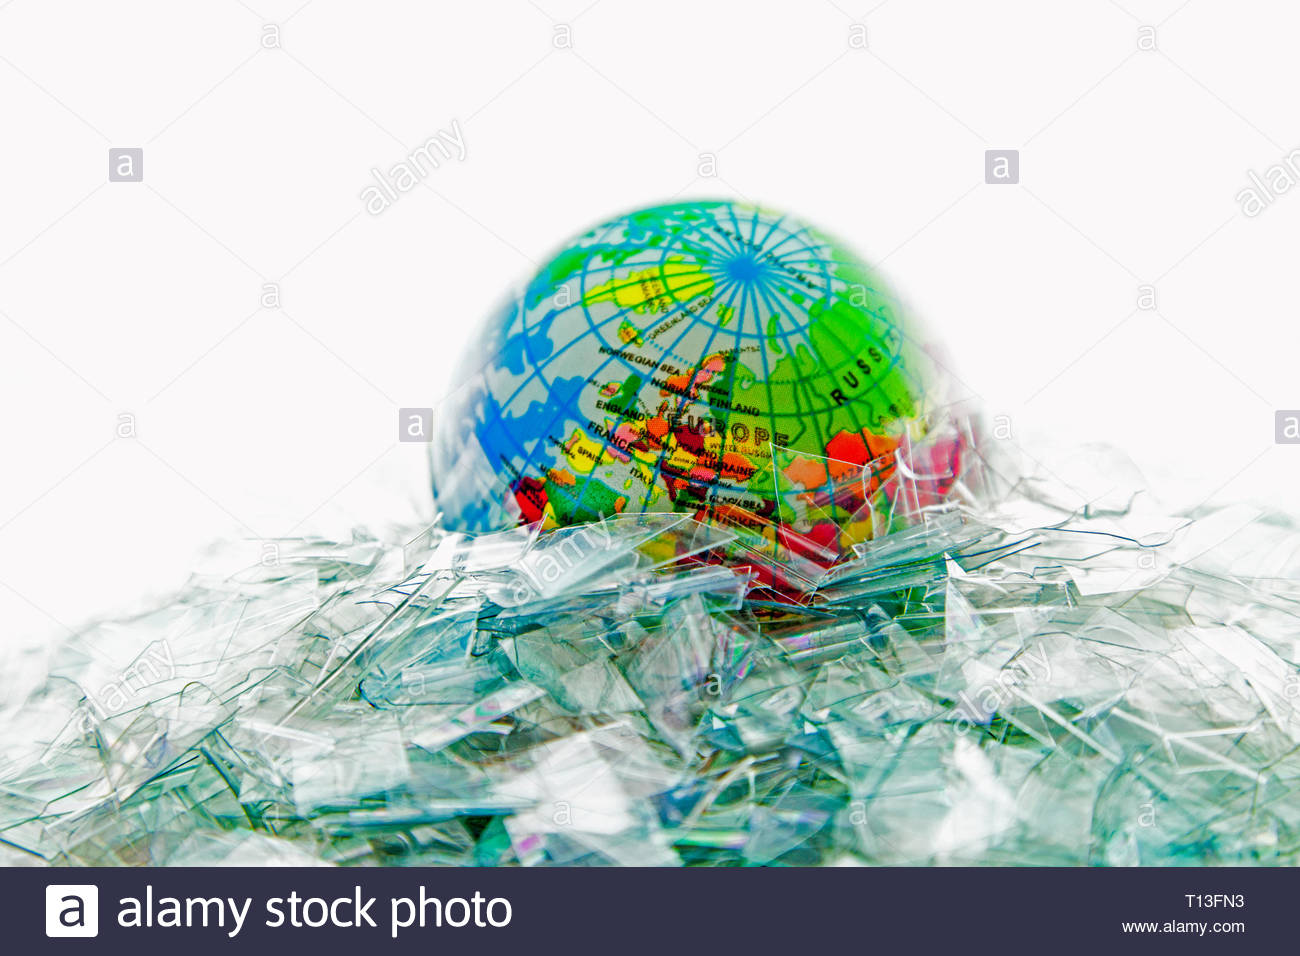 A studio creation of the Earth floating in a sea of clear plastic shards. Concept: plastic pollution, environmental damage, drowning the Earth - Stock Image